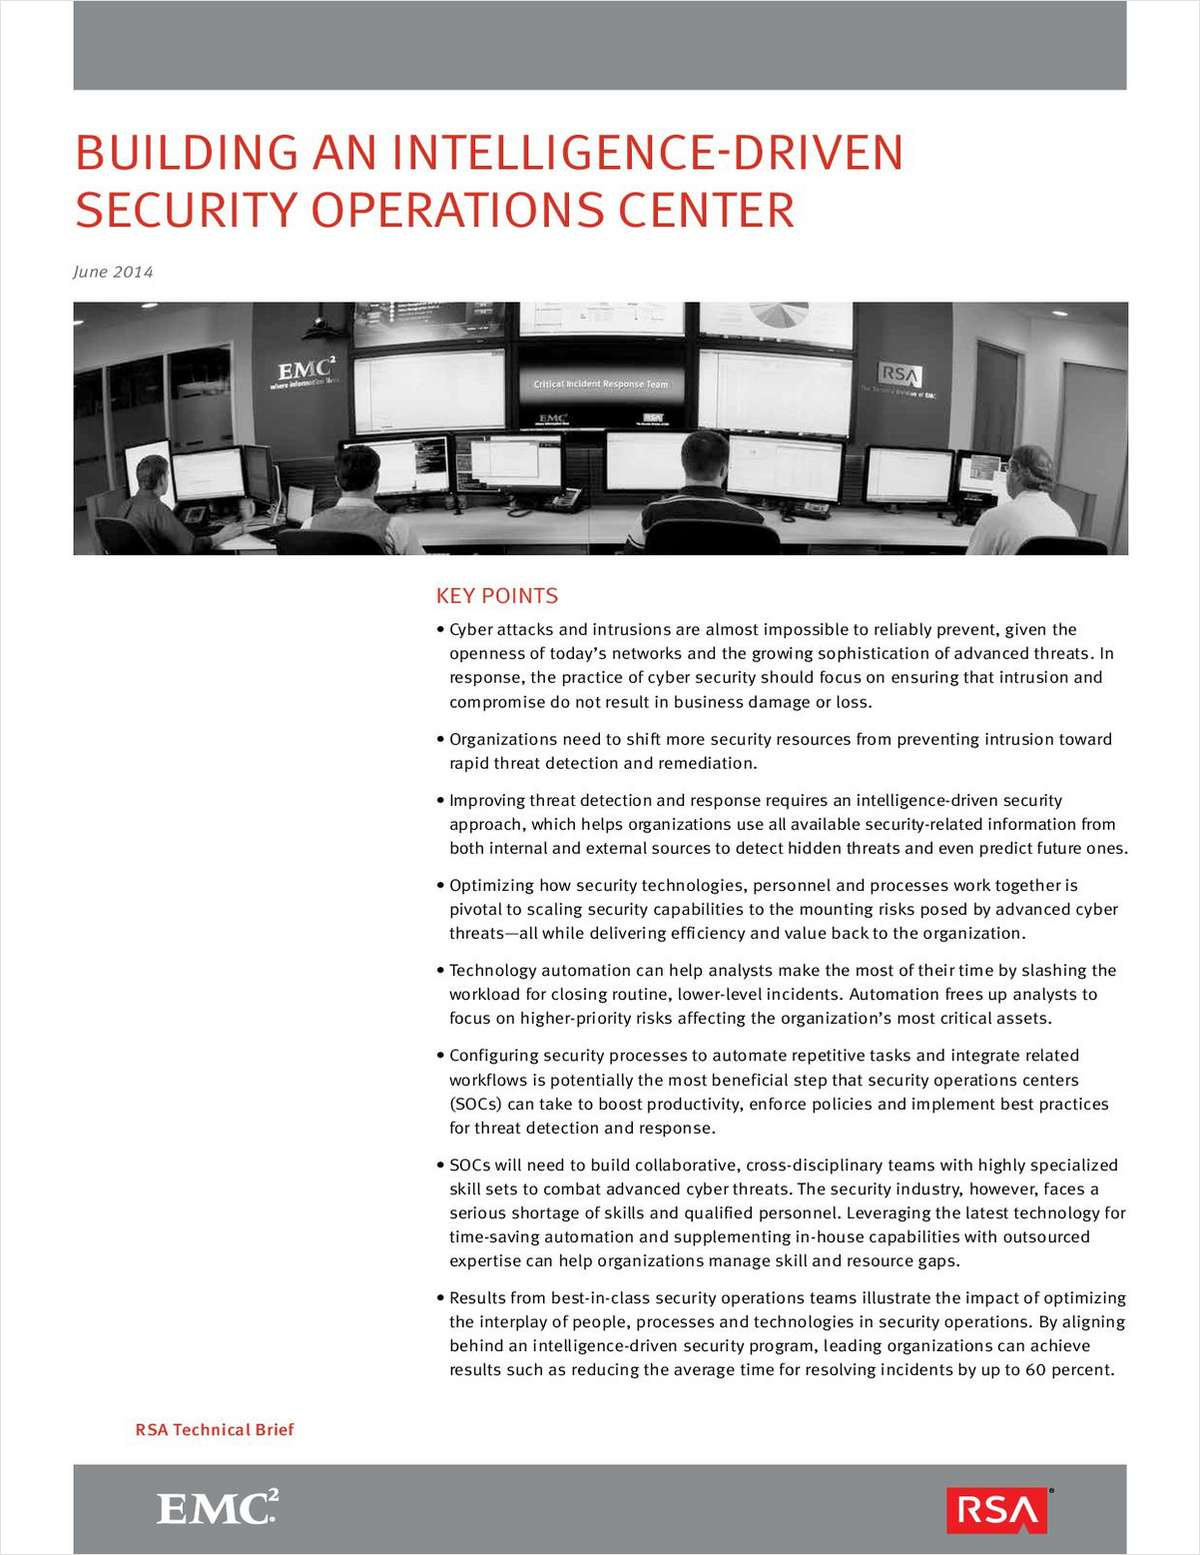 Building an Intelligence-Driven Security Operations Center